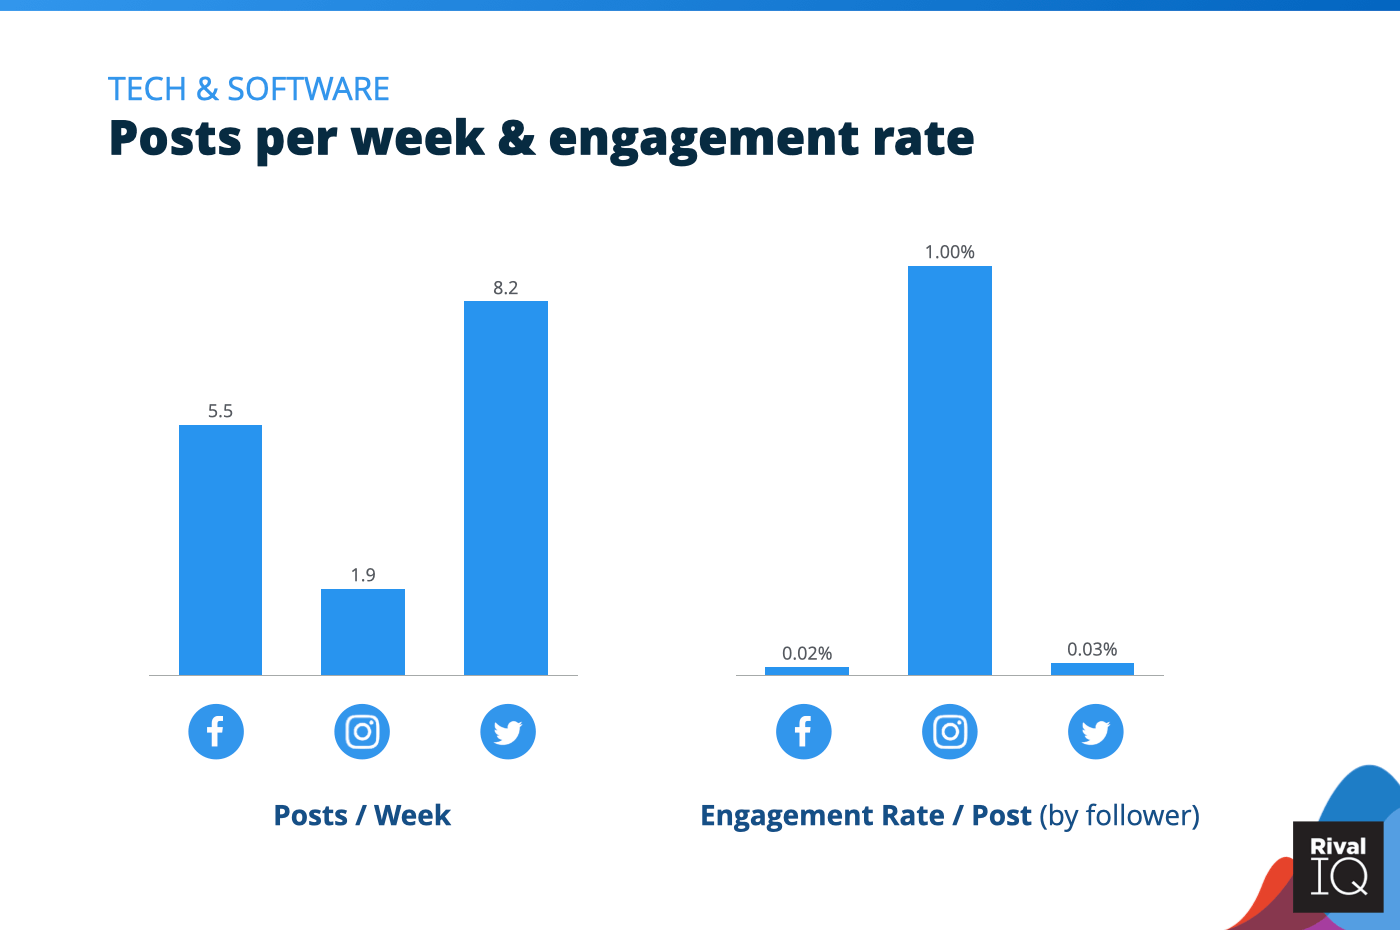 Chart of Posts per week and engagement rate per post across all channels, Tech & Software